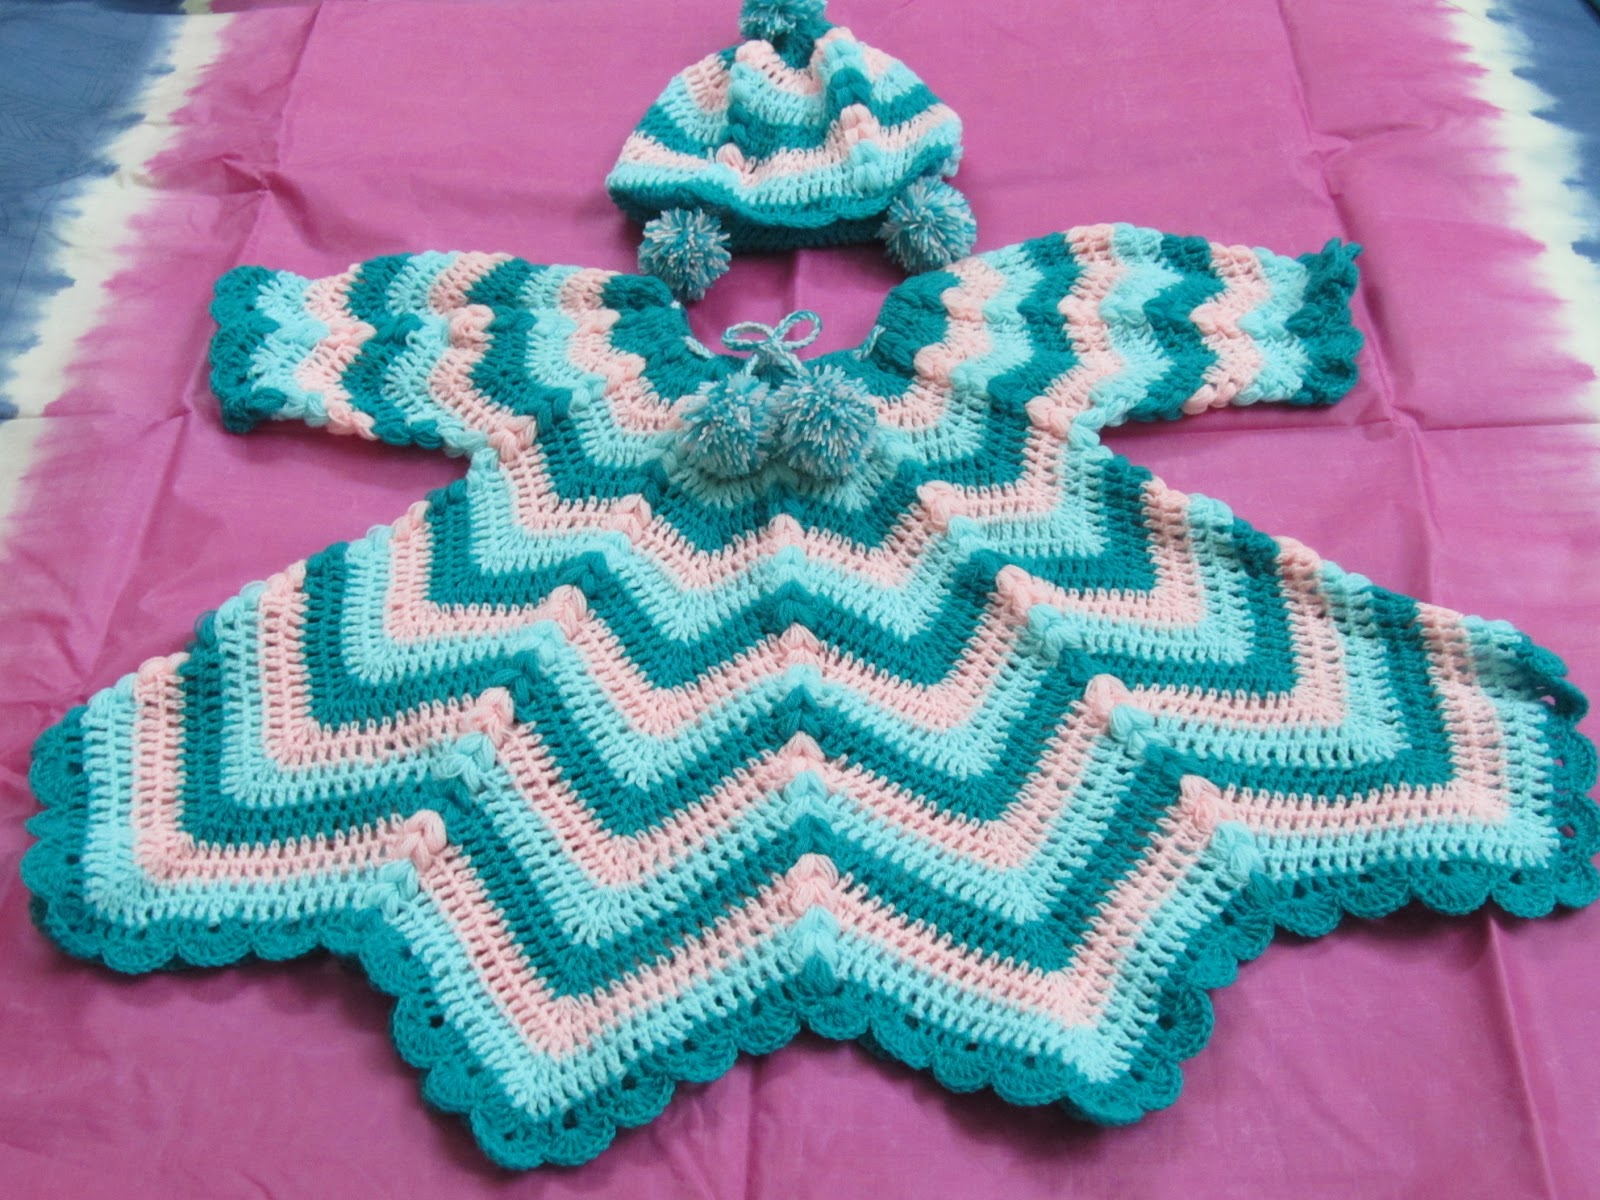 Knitting Patterns Baby Frocks : Aamader Blog: Crochet Baby Frock Set